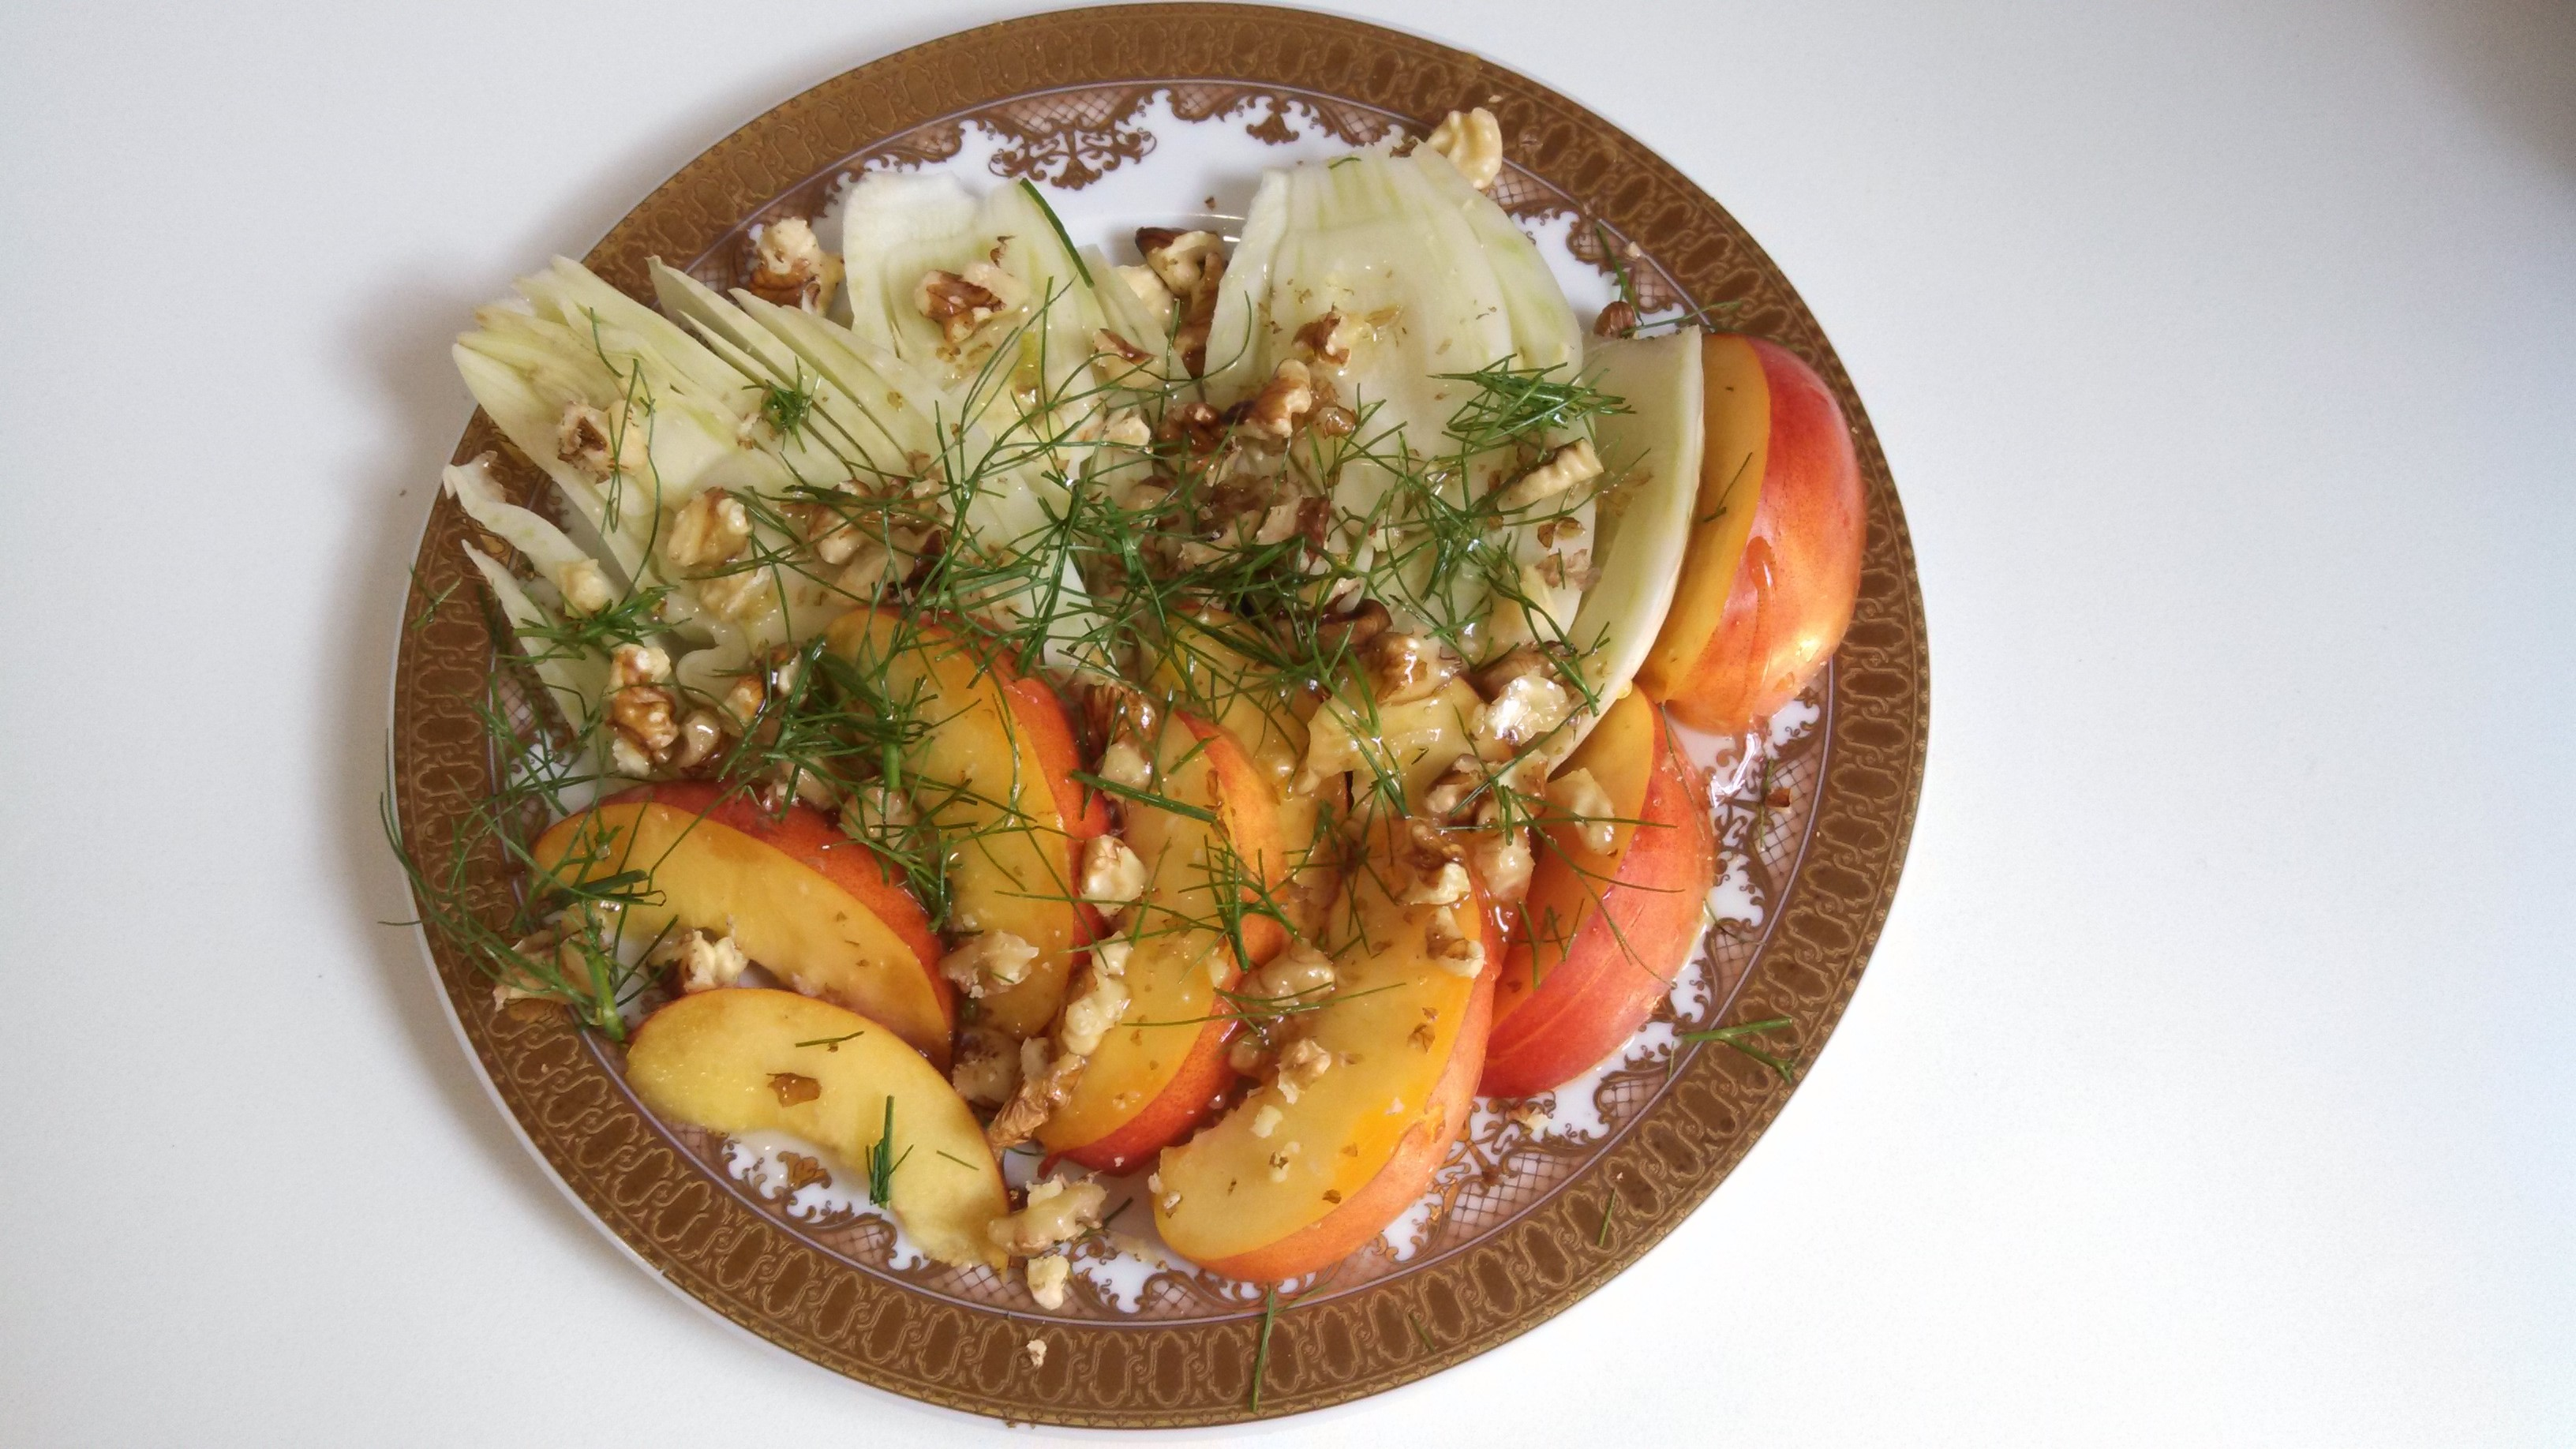 Raw Fennel, Nectarine, and Walnut Salad Photo by Veronica Hackethal